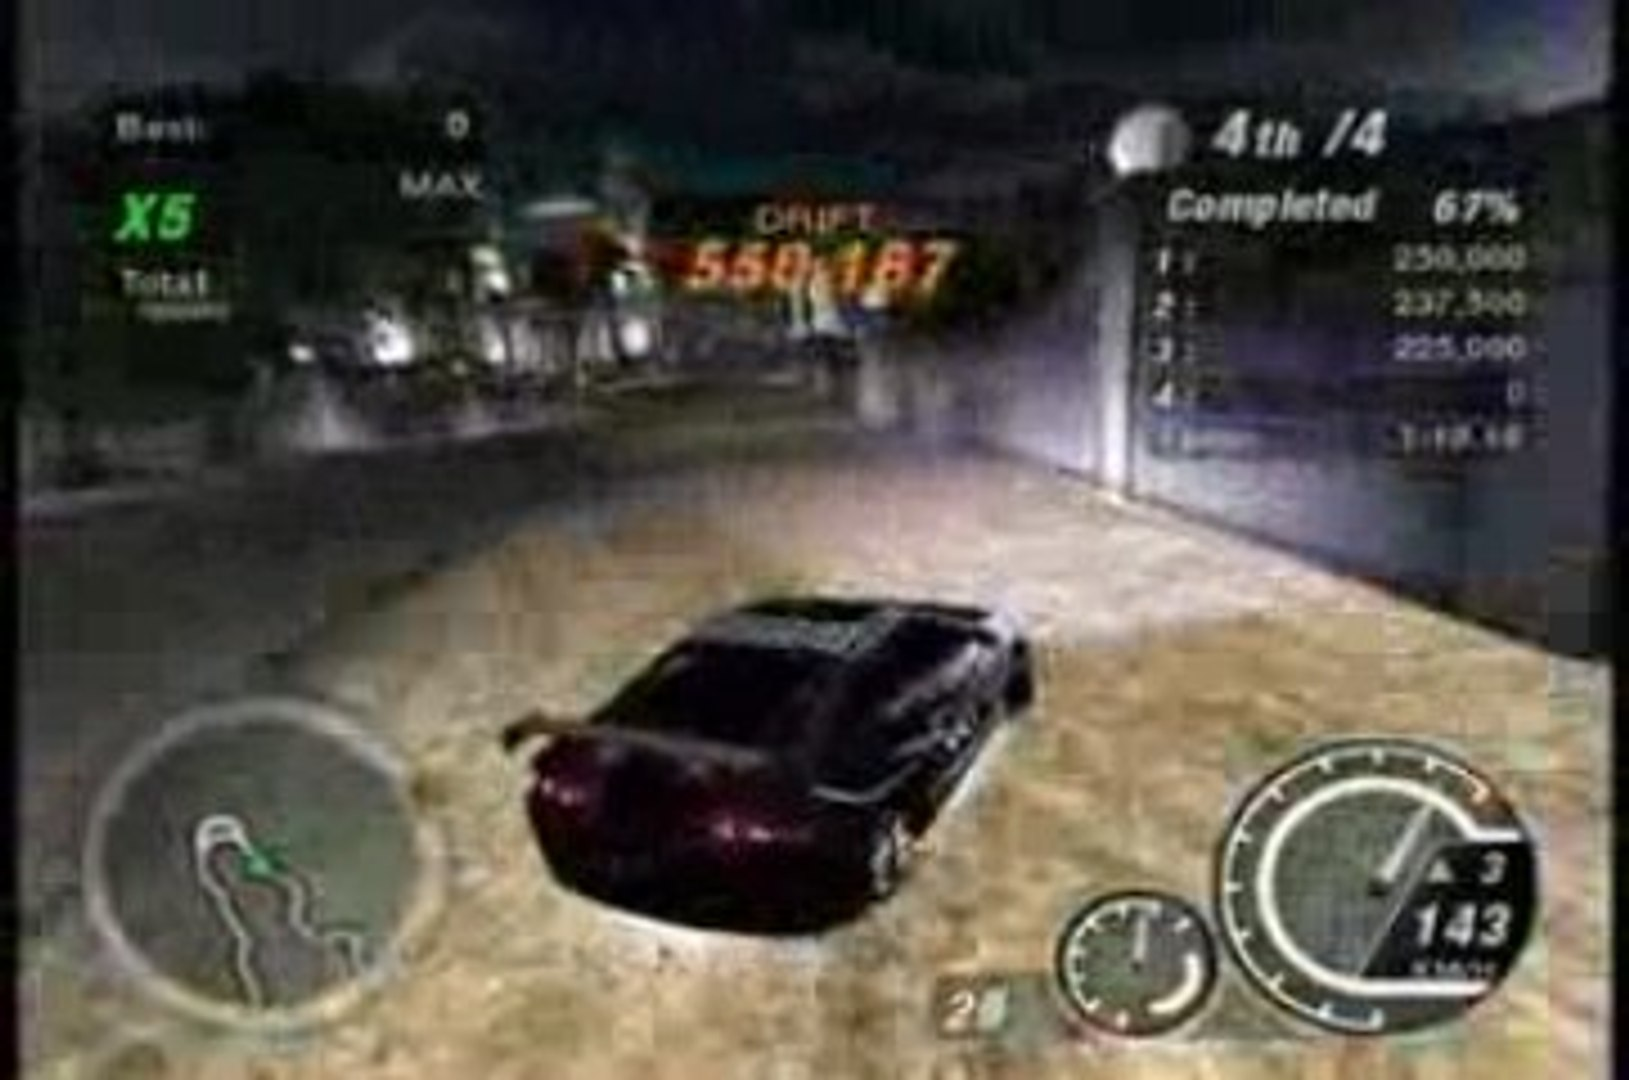 NFSU2 - NON-STOP DRIFTING WITH ACURA RSX - 1 000 000